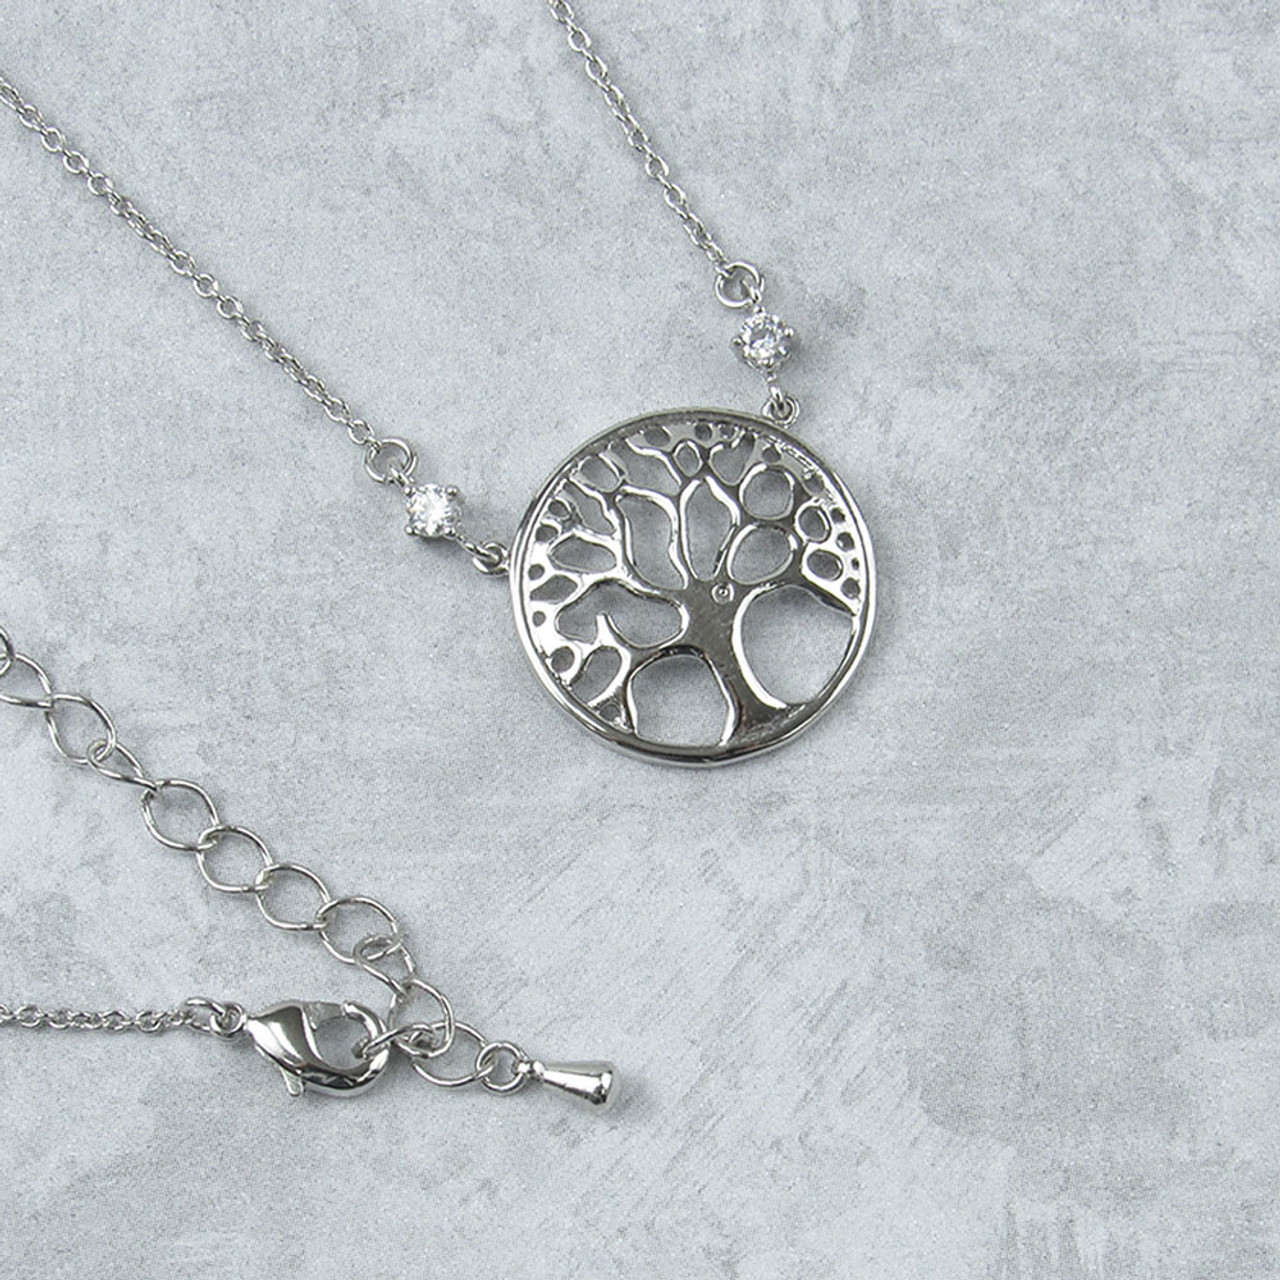 cc3ec6486defd Tree Of Life Necklace with Crystals from Swarovski®